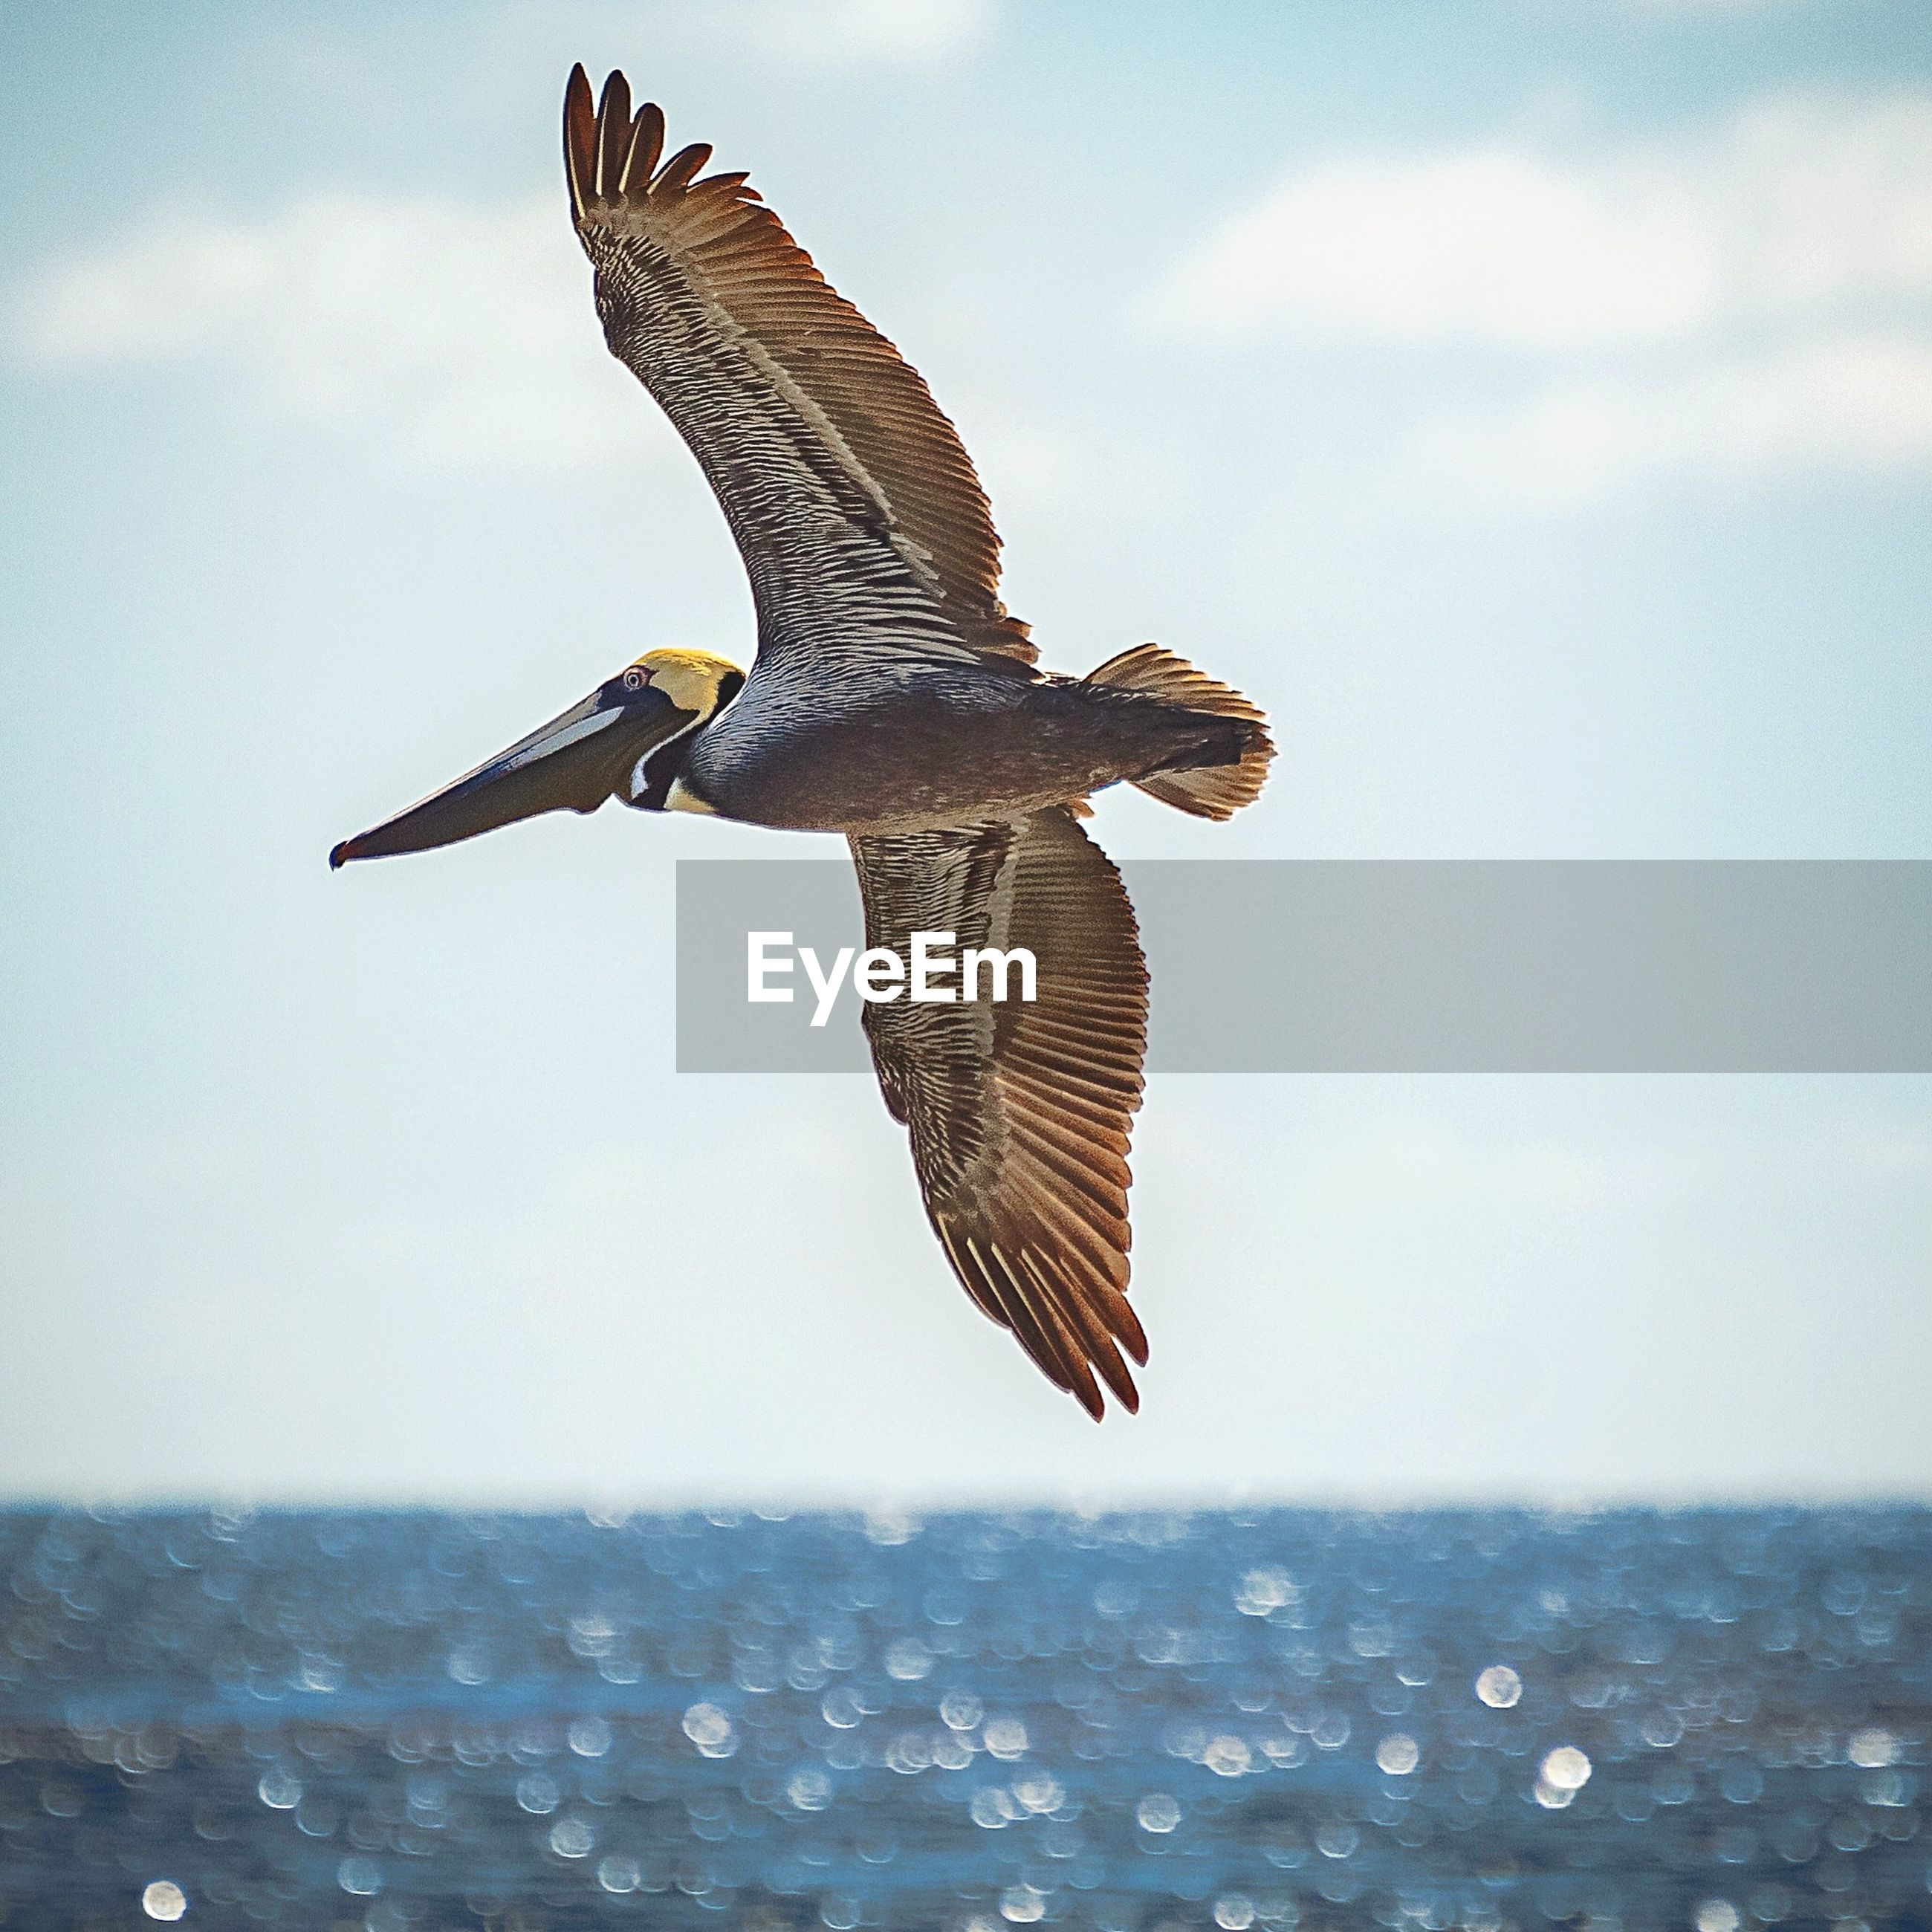 CLOSE-UP OF EAGLE FLYING OVER SEA AGAINST SKY